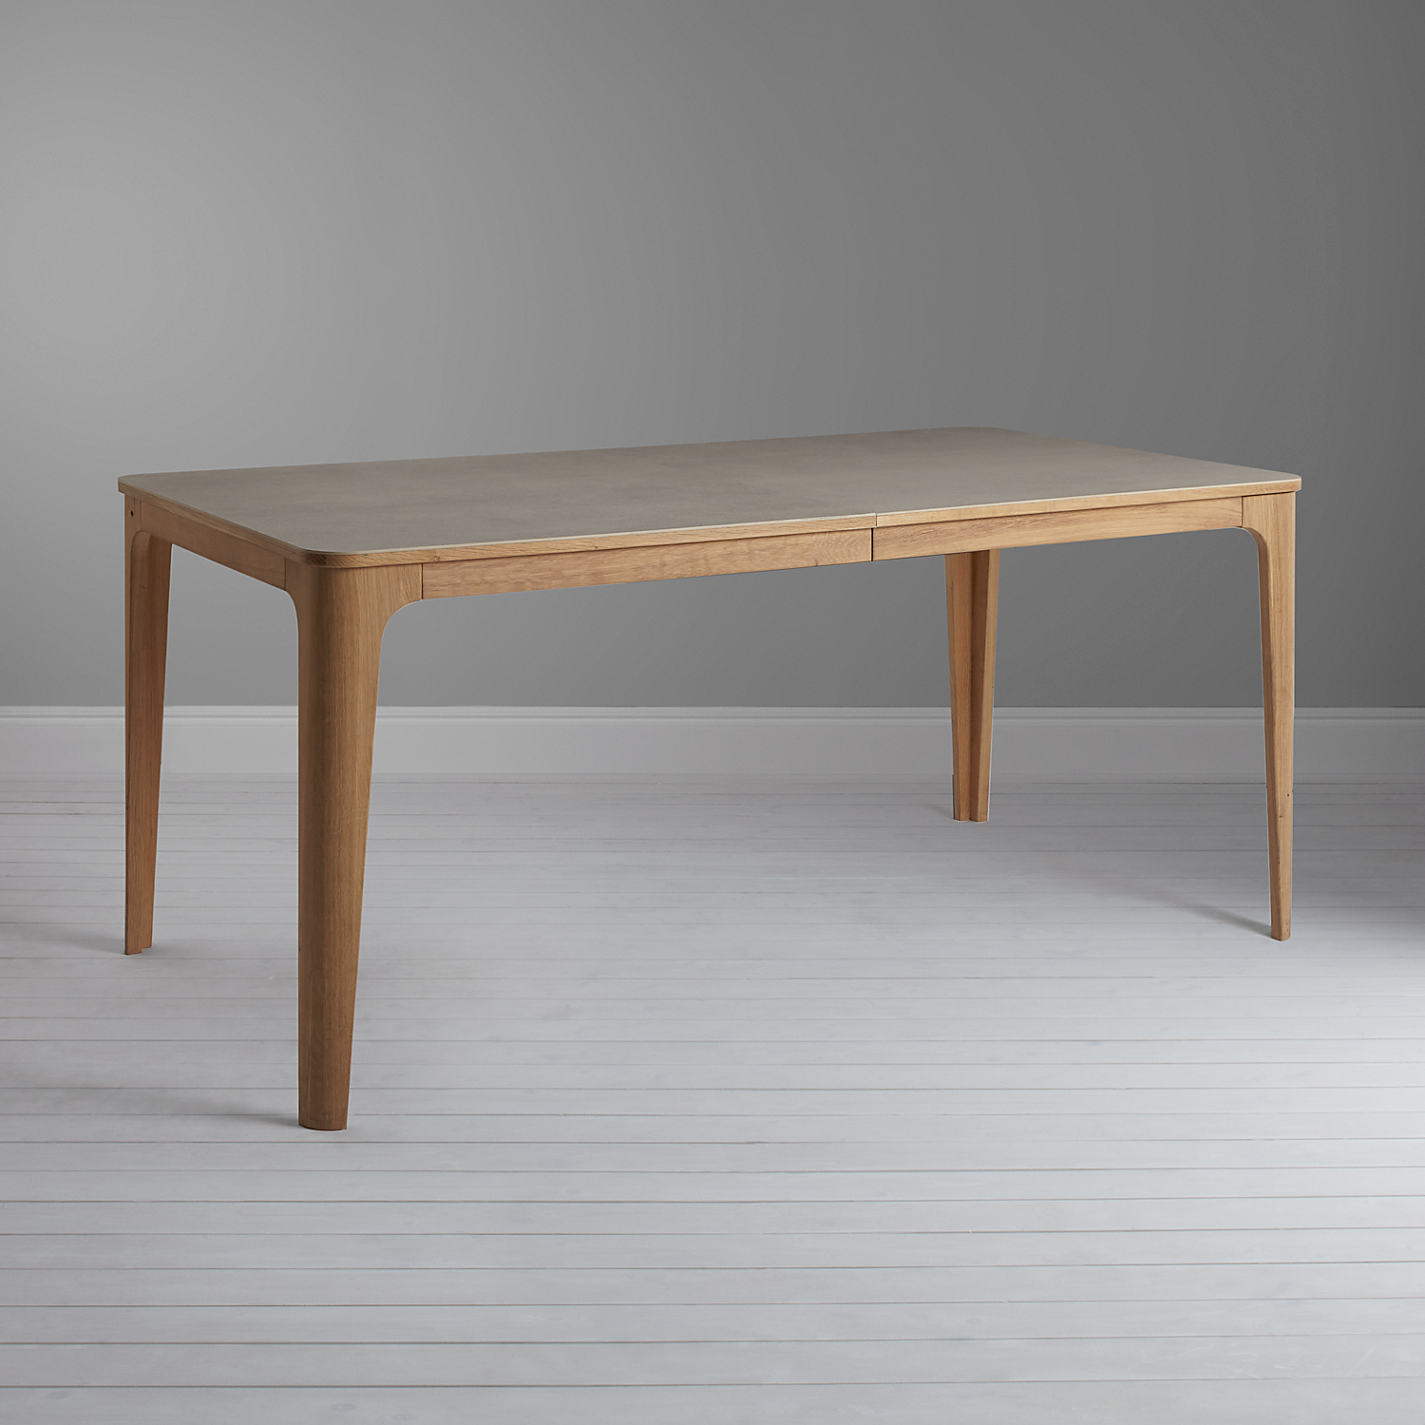 Charming Buy Ebbe Gehl For John Lewis Mira Ceramic Top Oak Dining Table Online At  Johnlewis.